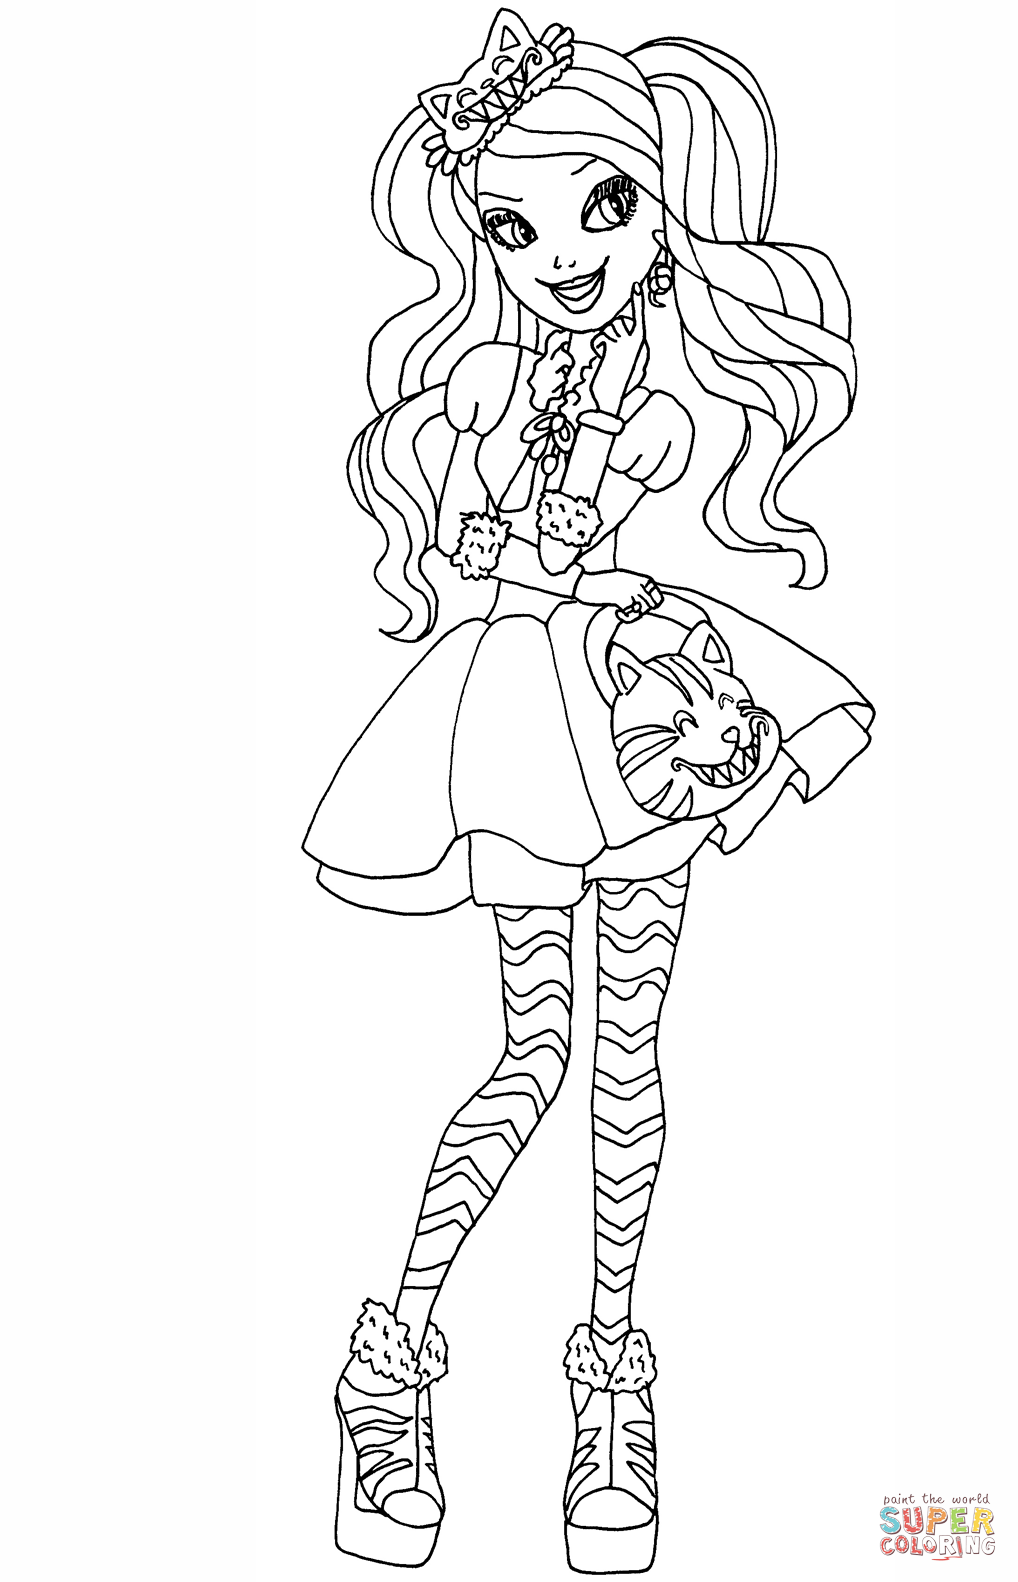 ever after coloring pages ever after high coloring pages print and colorcom after coloring pages ever